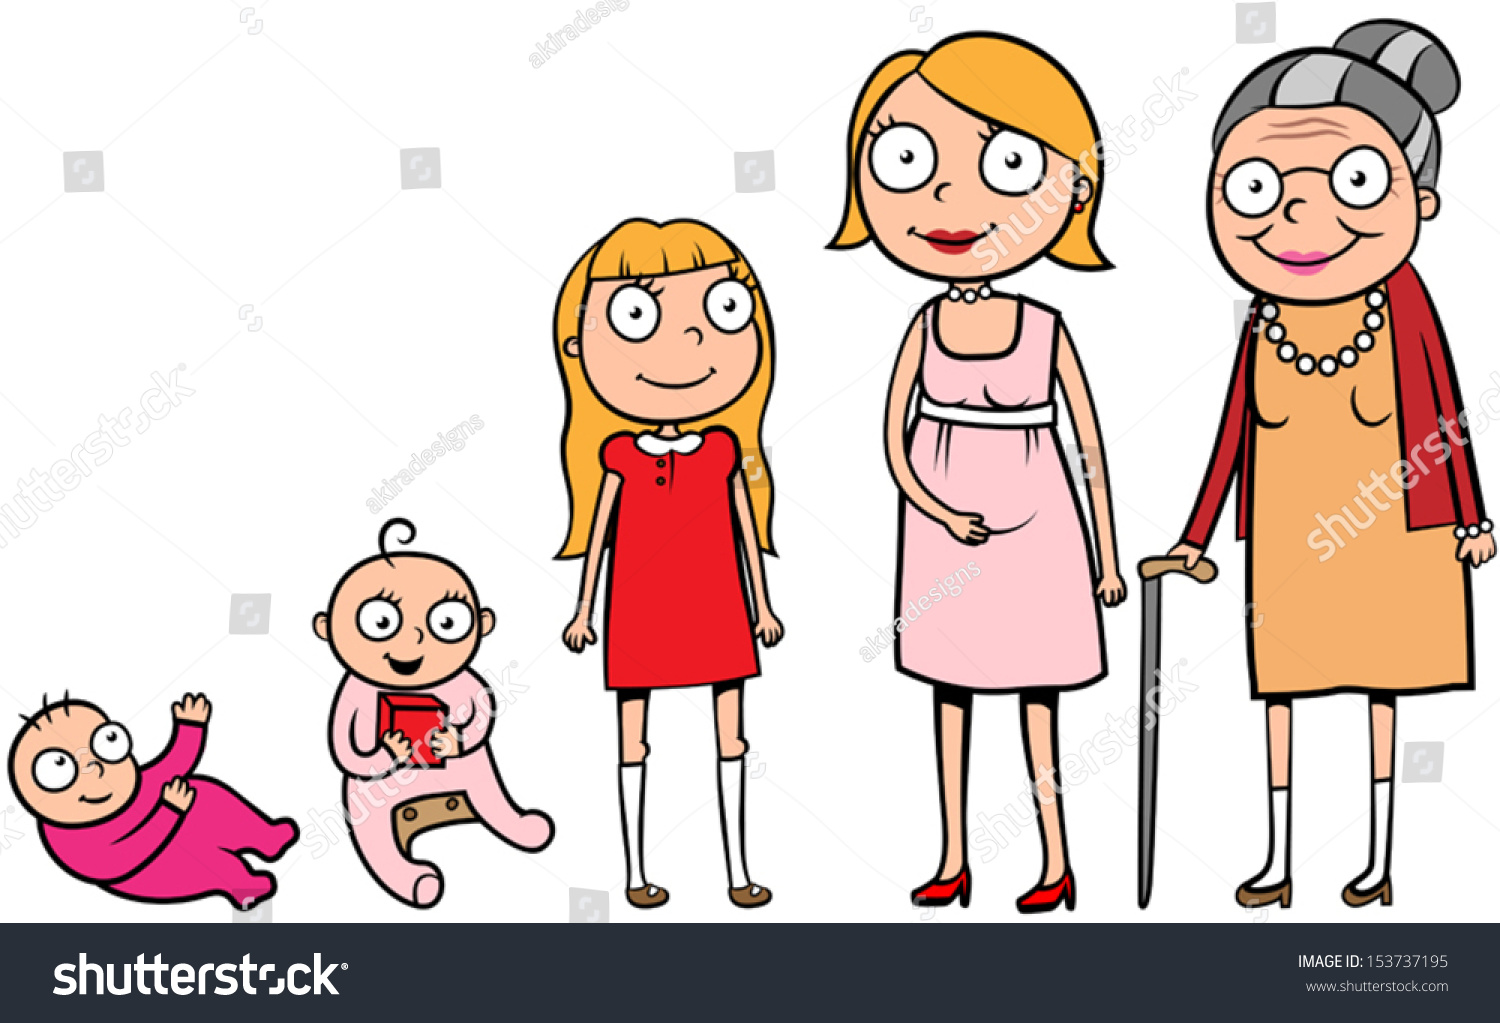 Life cycle various stages of development from an embryo to - Cartoon Illustration Of A Woman During Different Life Stages Life Cycle Growth Development